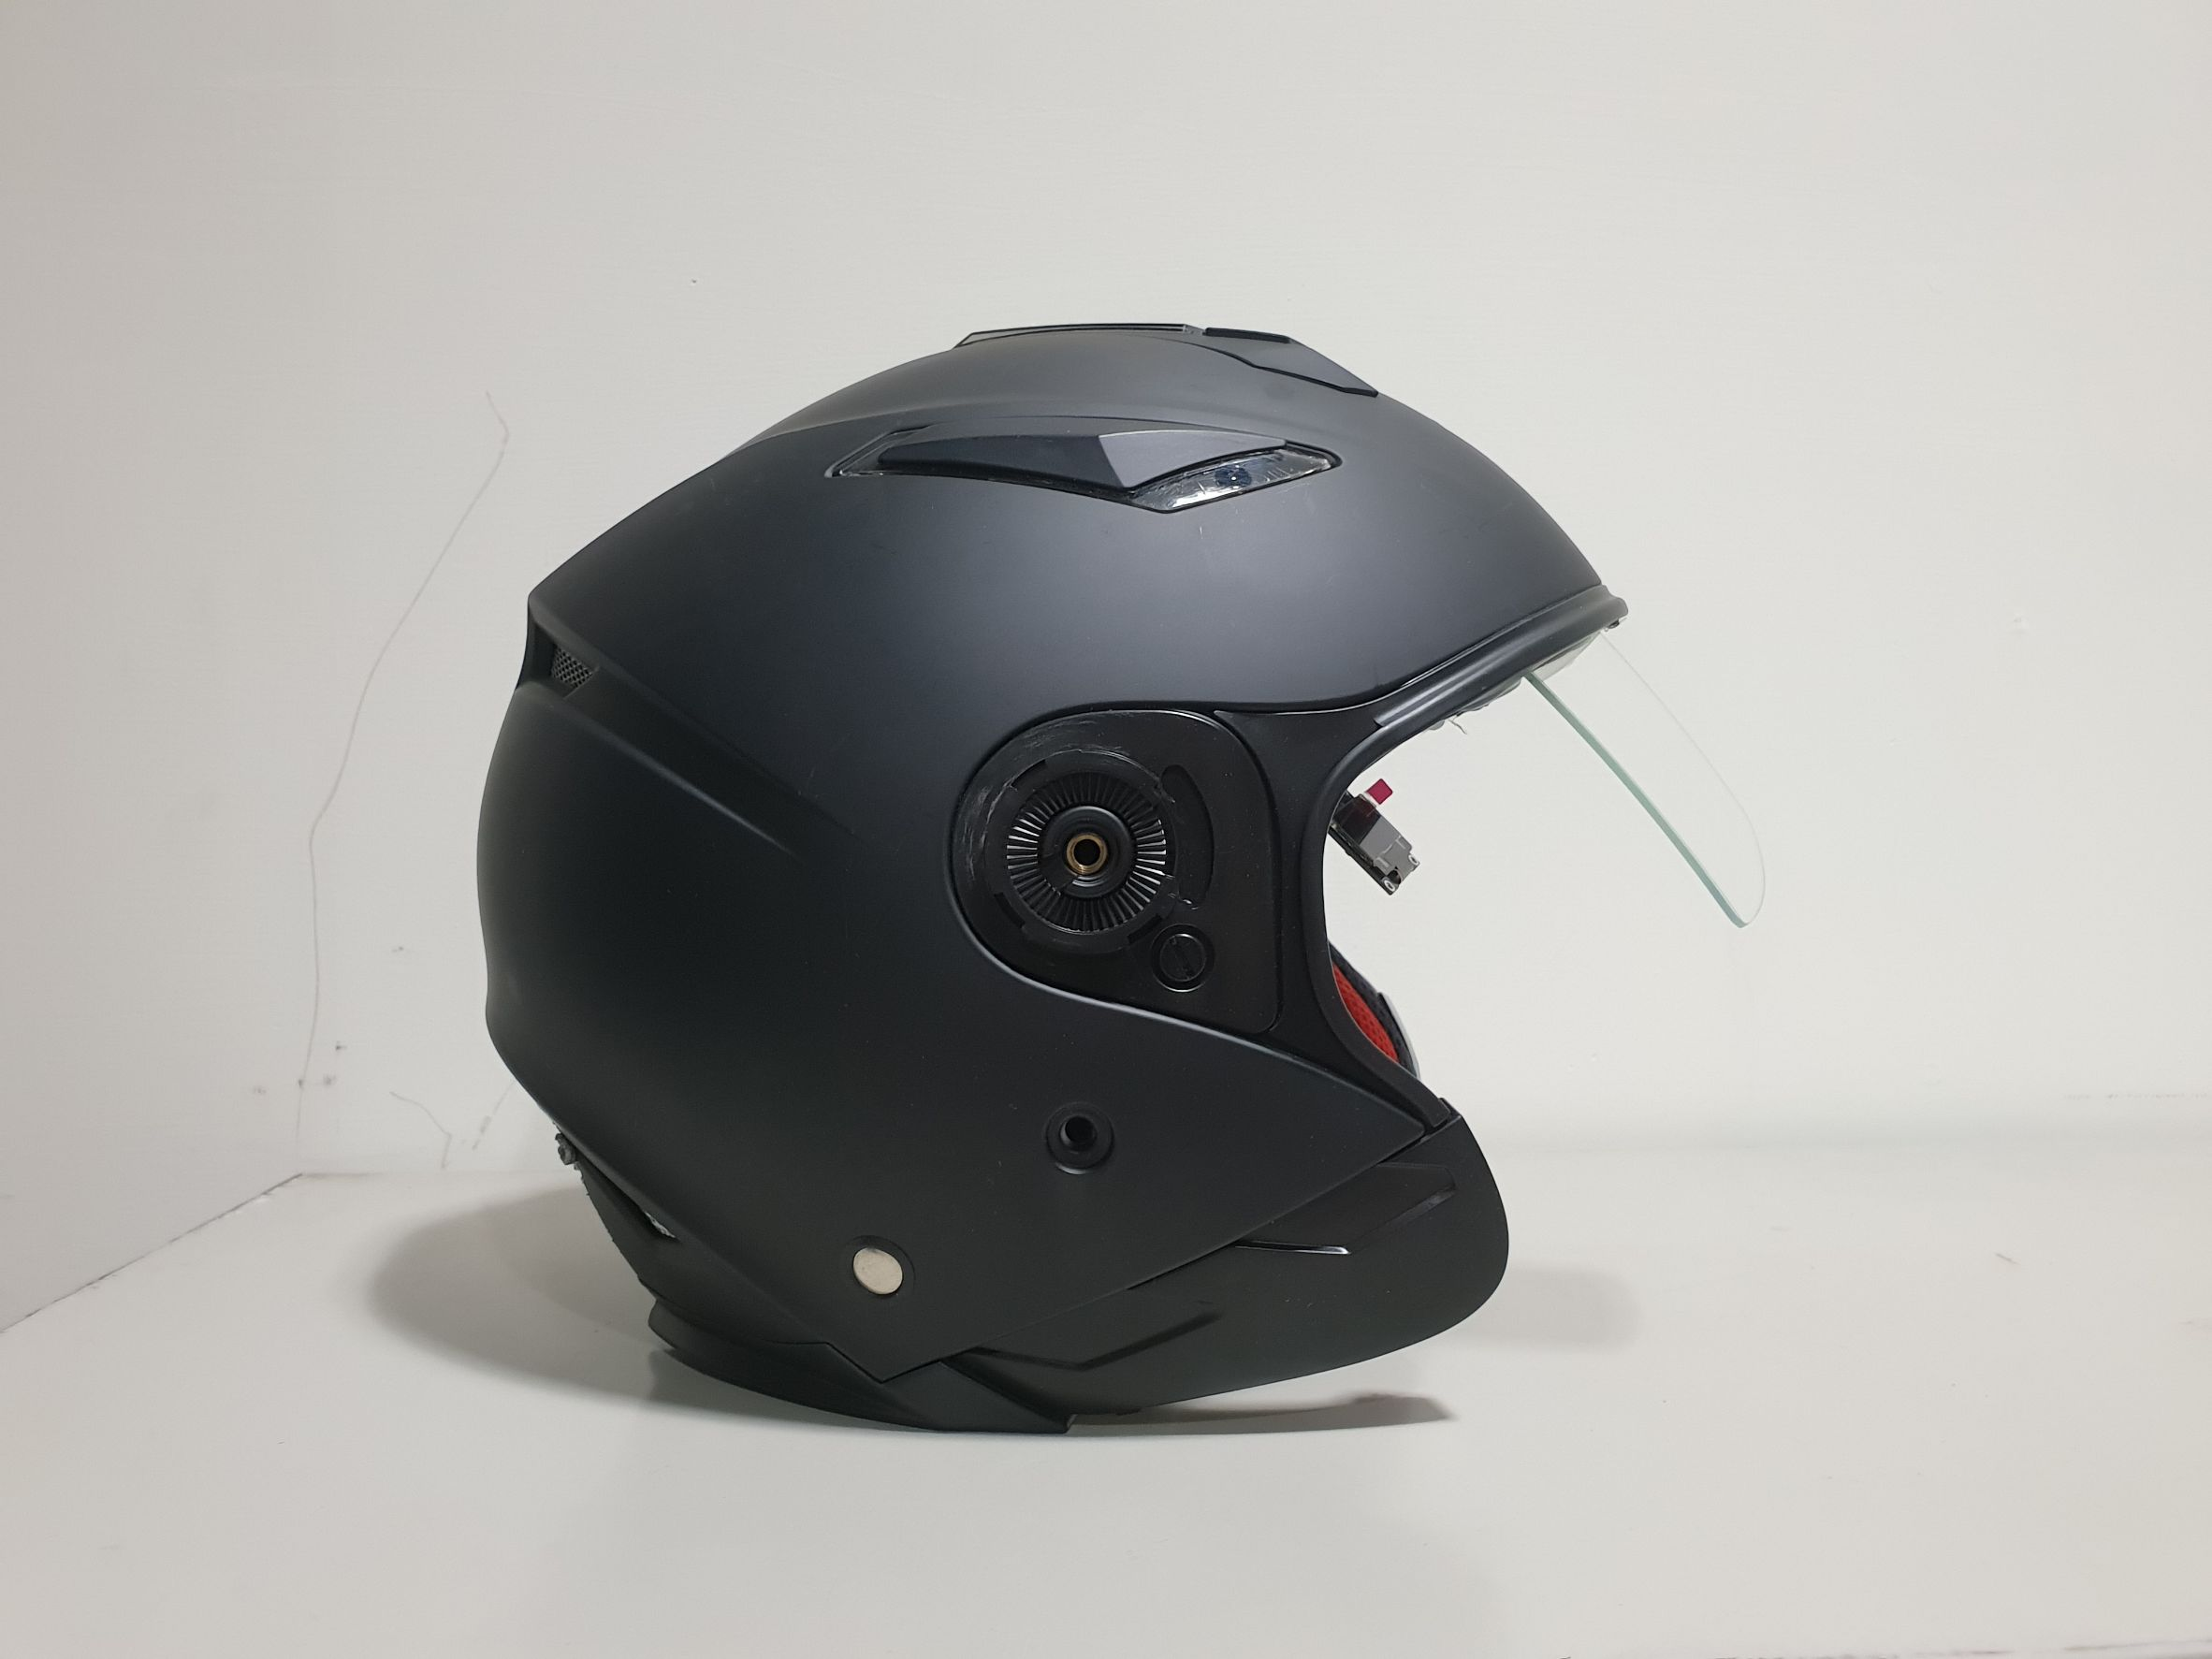 Helmet with HUD Supporting Display